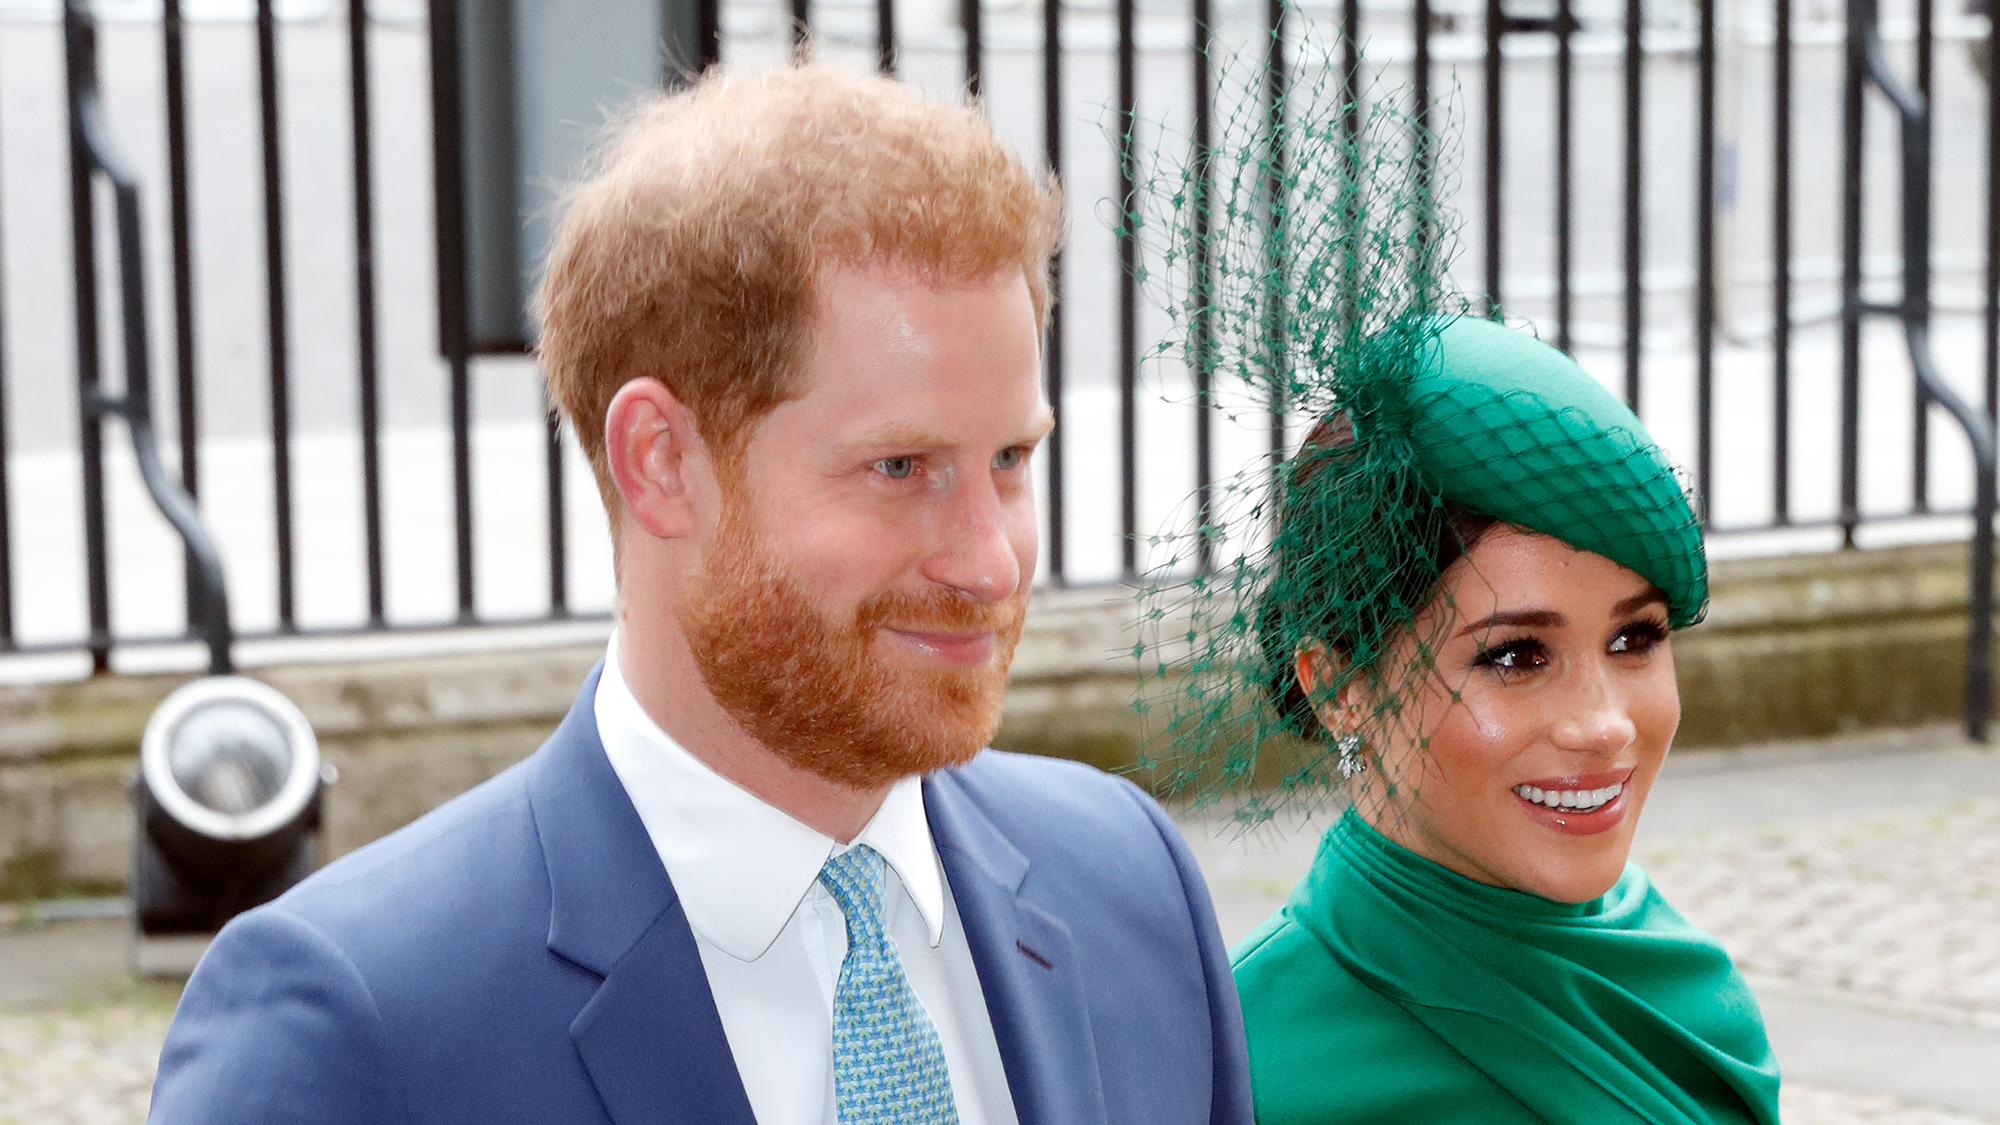 It looks like Harry and Meghan have just quit Instagram